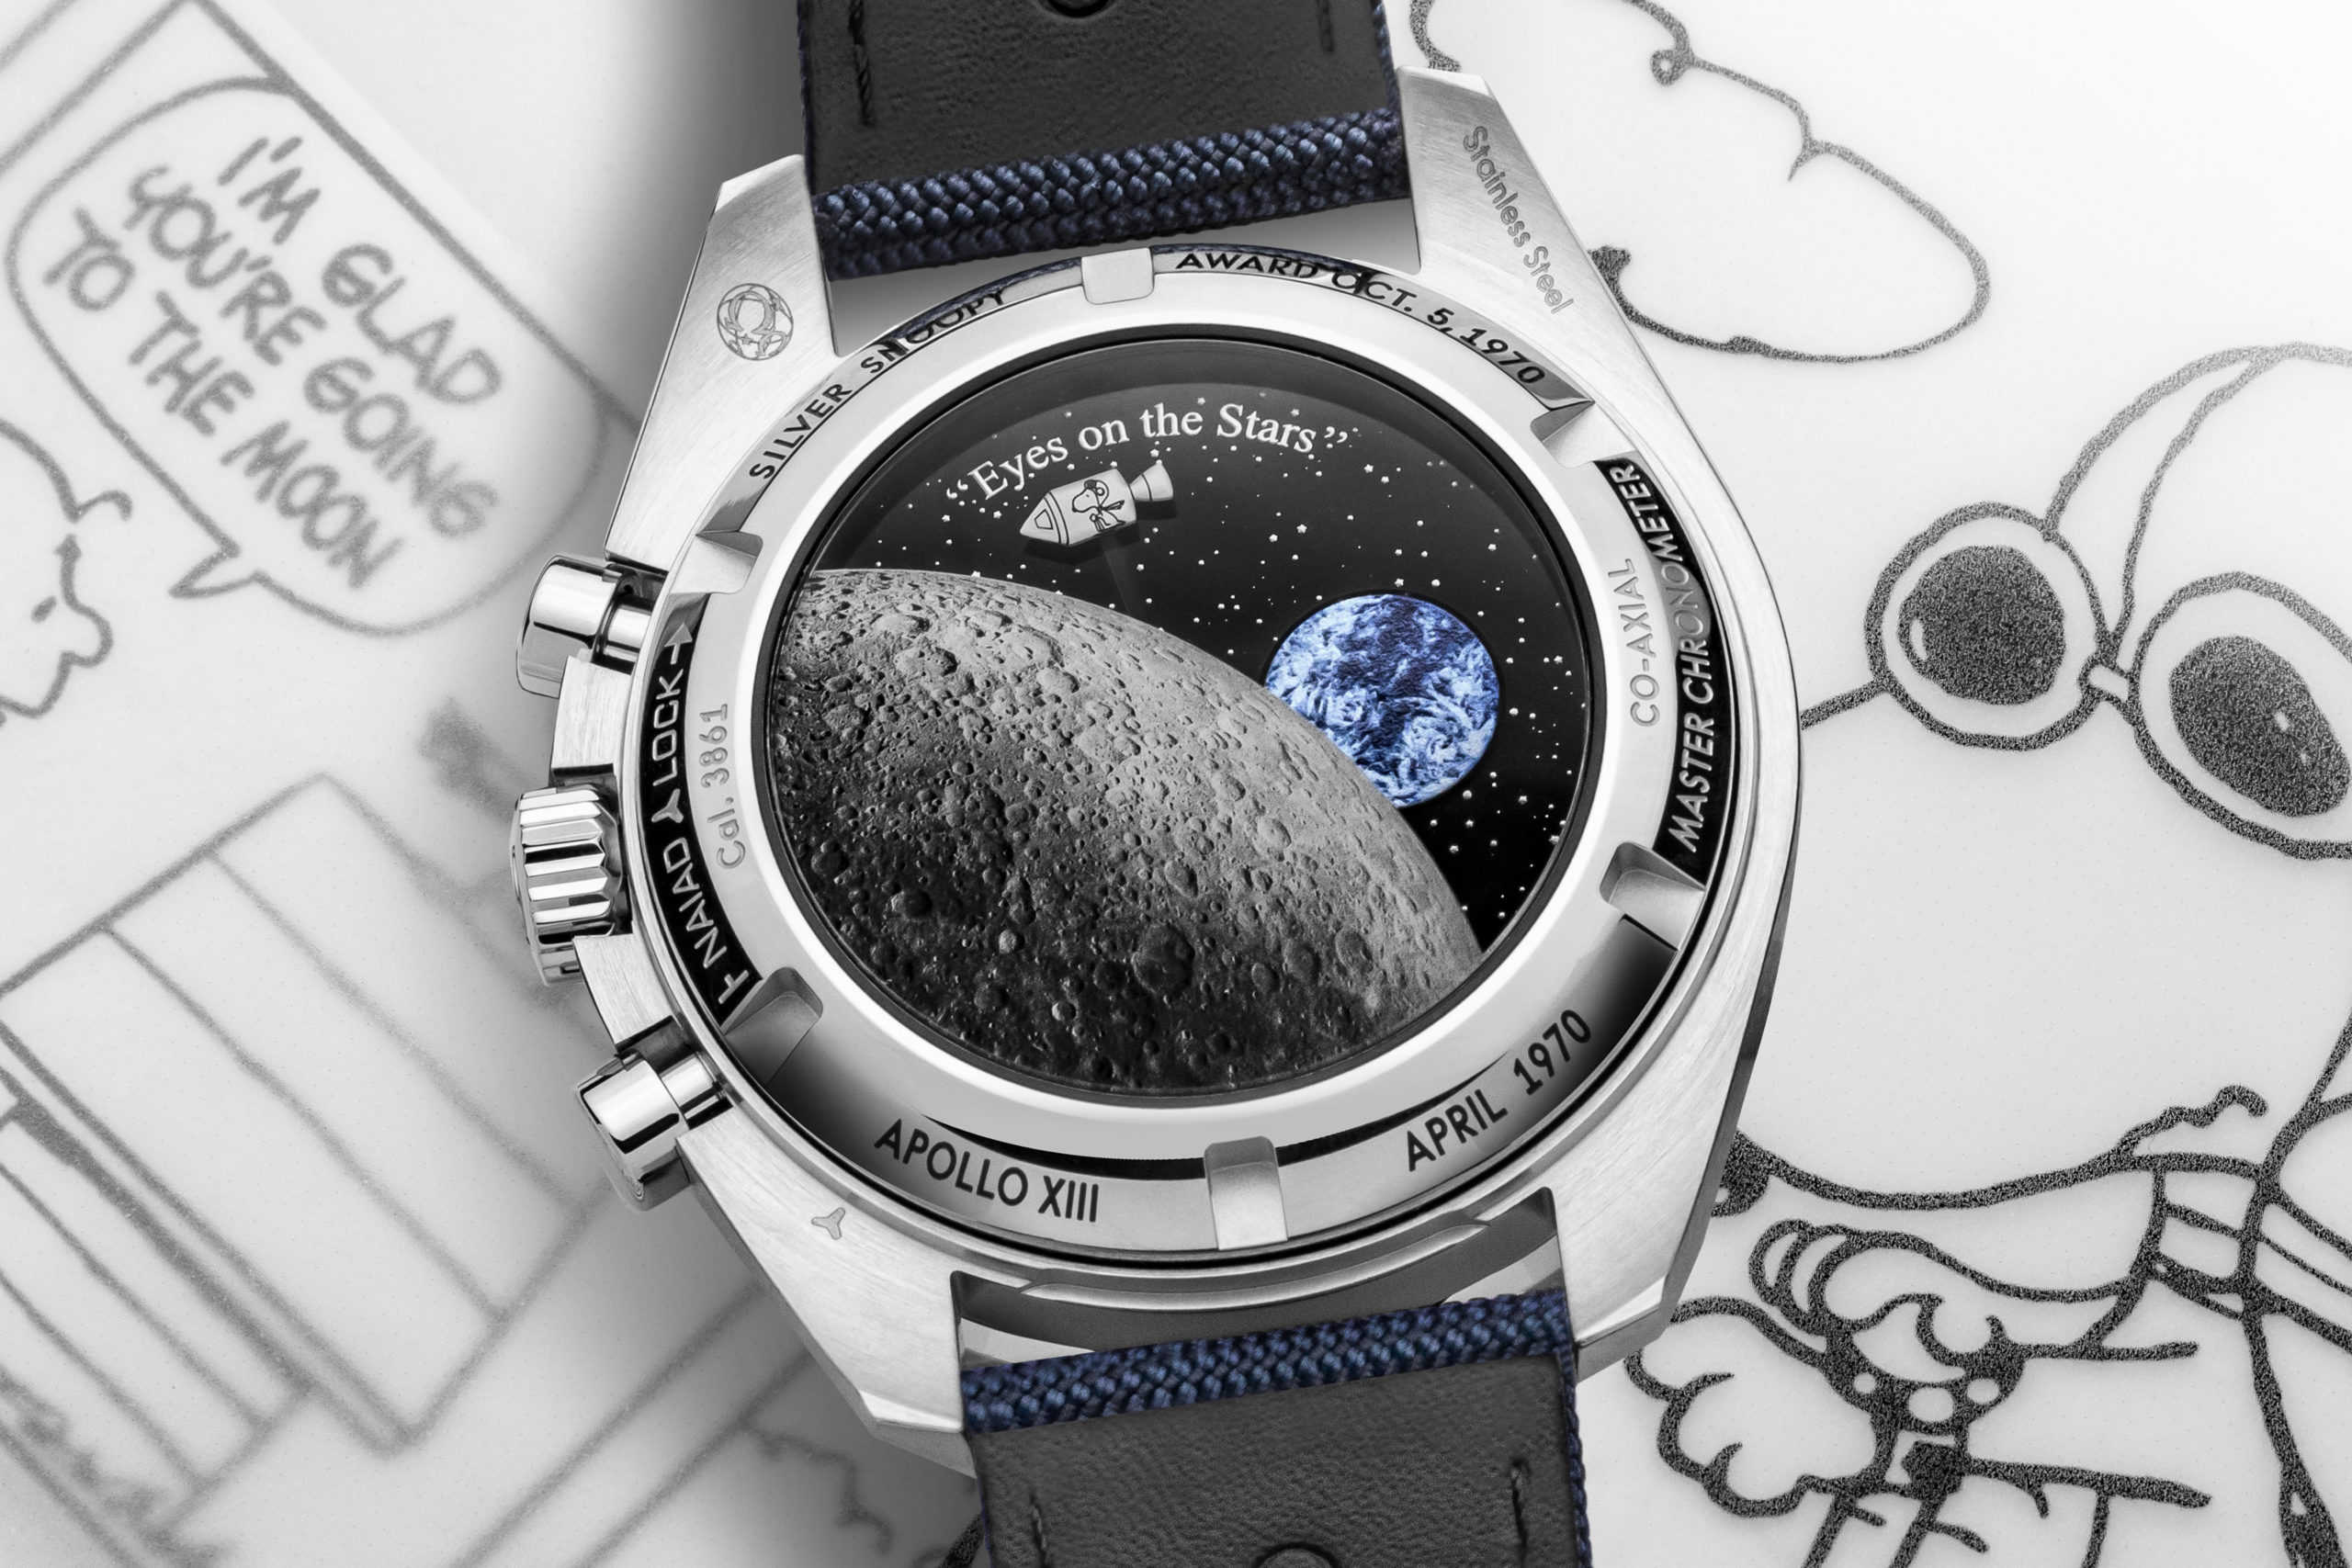 When the chronograph seconds hand is in use, Snoopy takes a trip around the mysterious far side of the moon